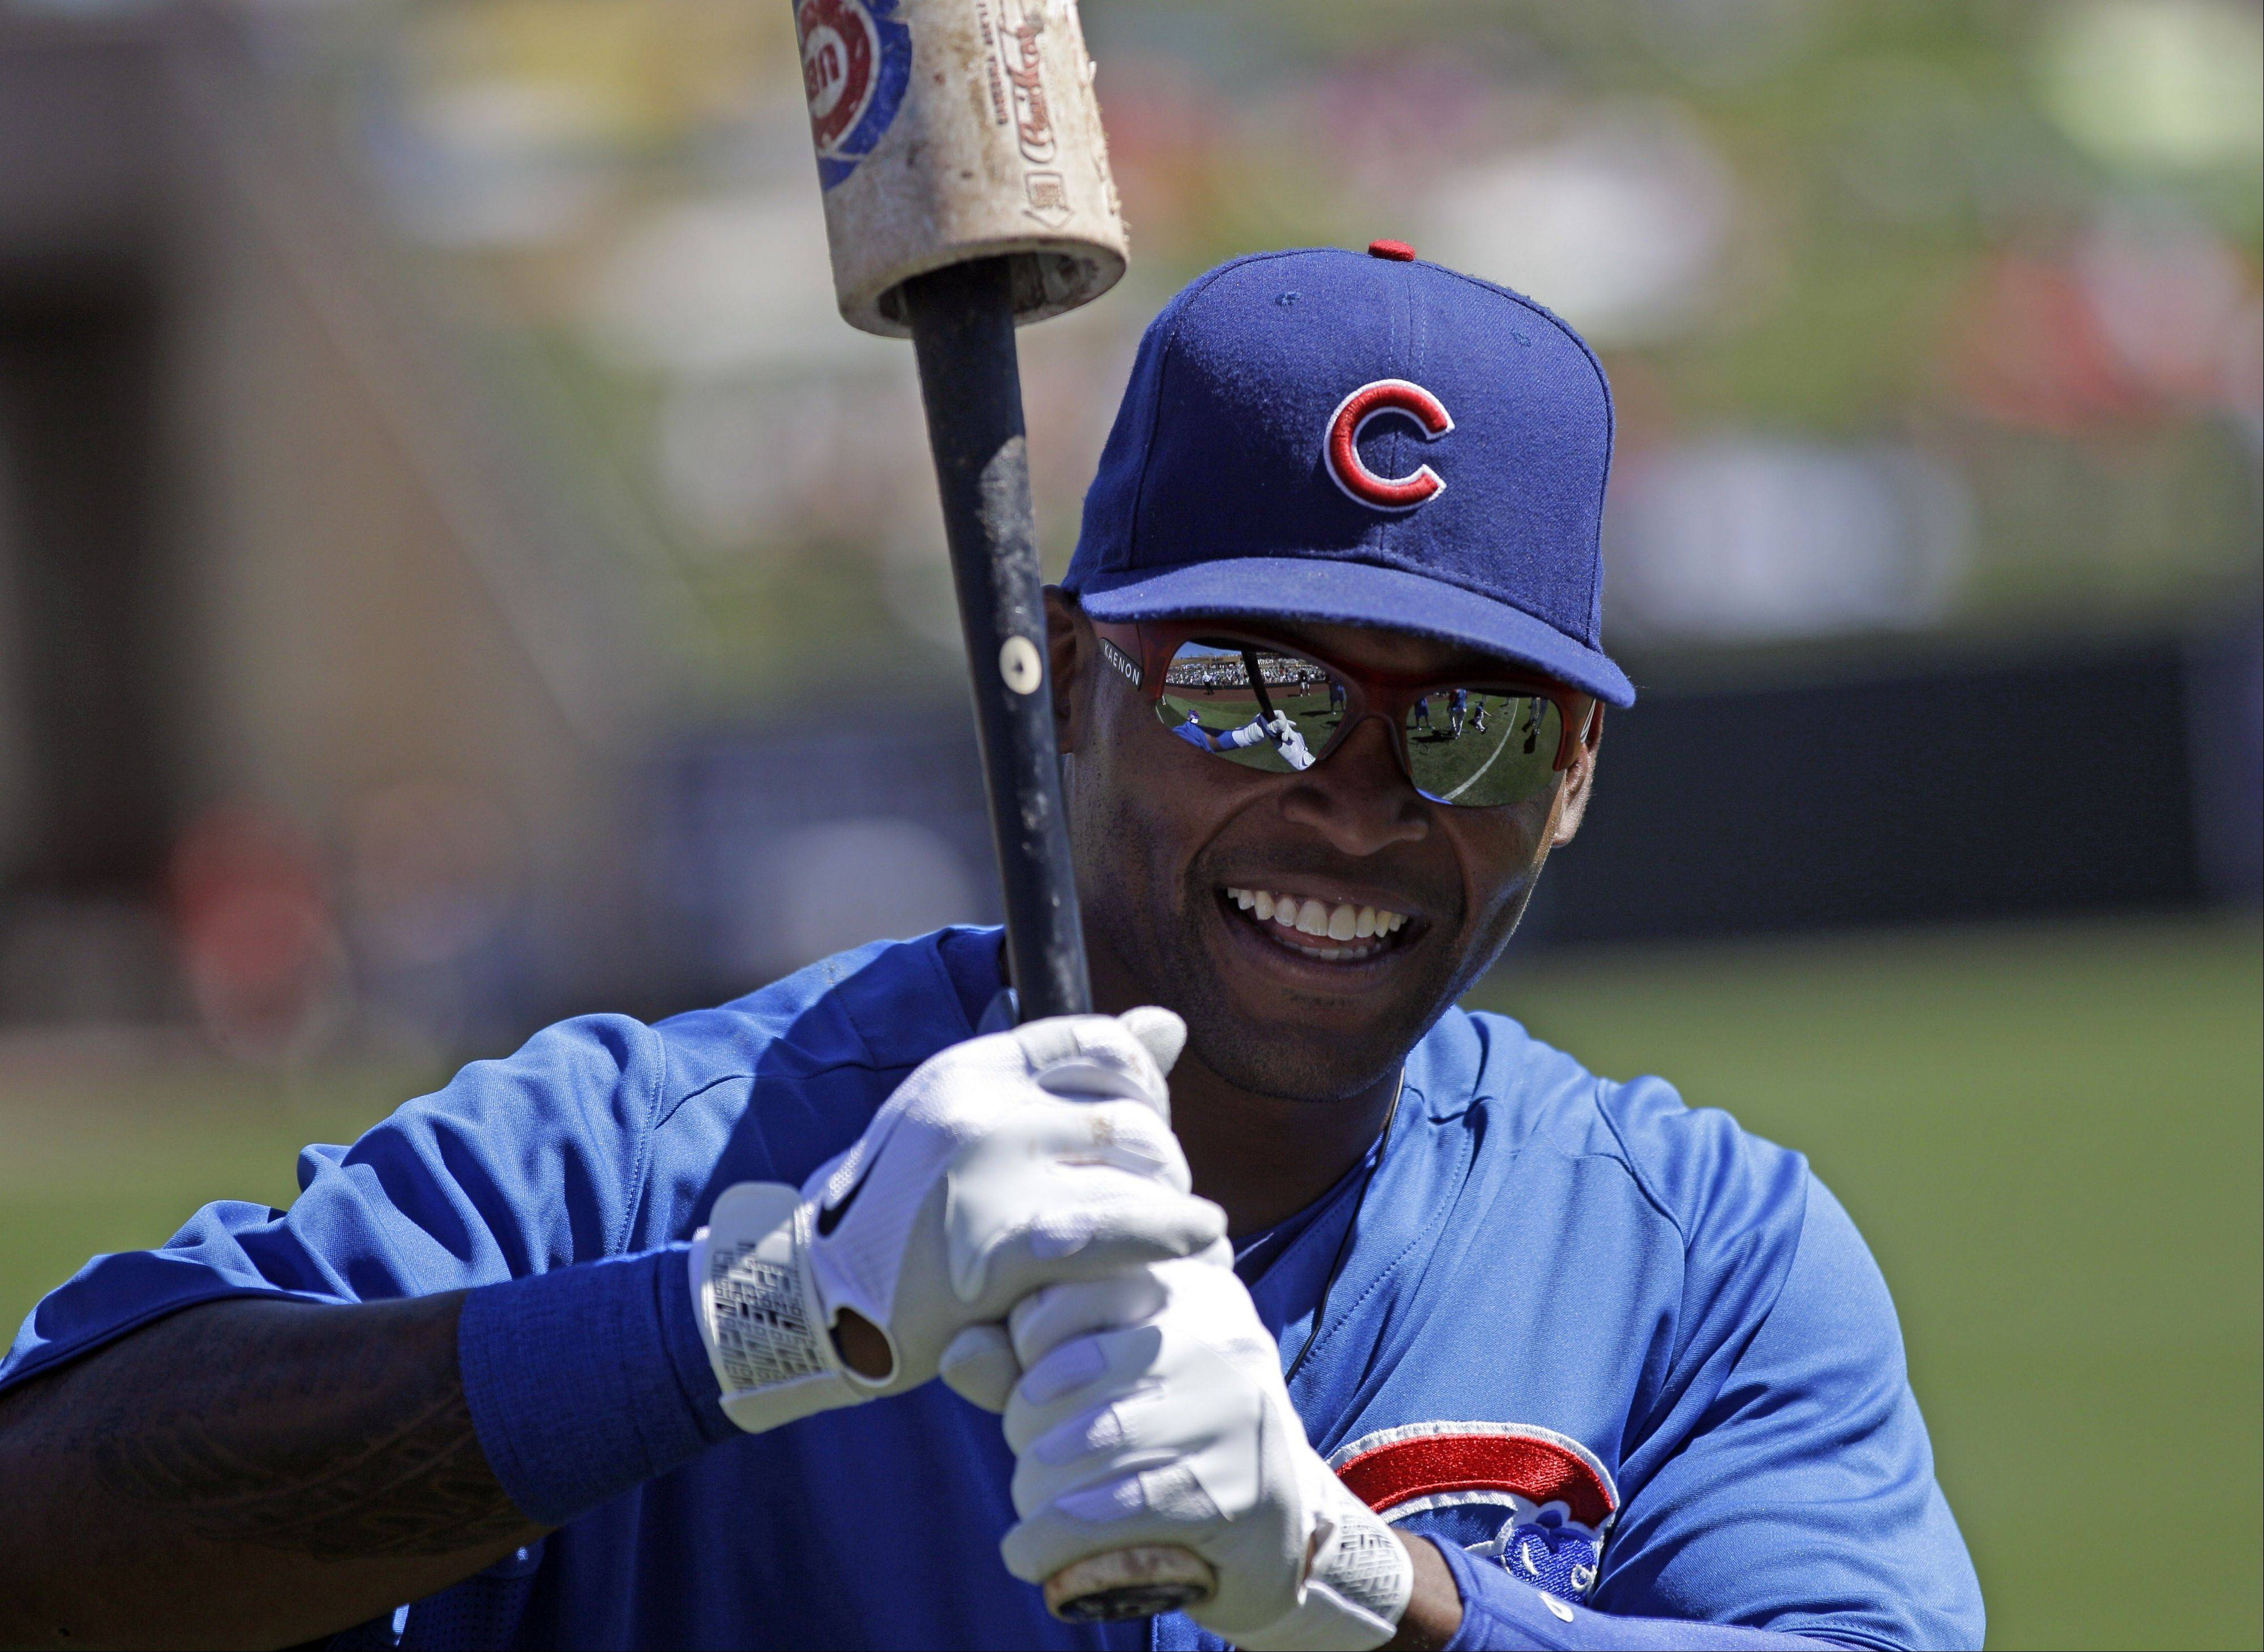 Former Cub Marlon Byrd, traded to Boston in April, was suspended in June for taking a banned substance.